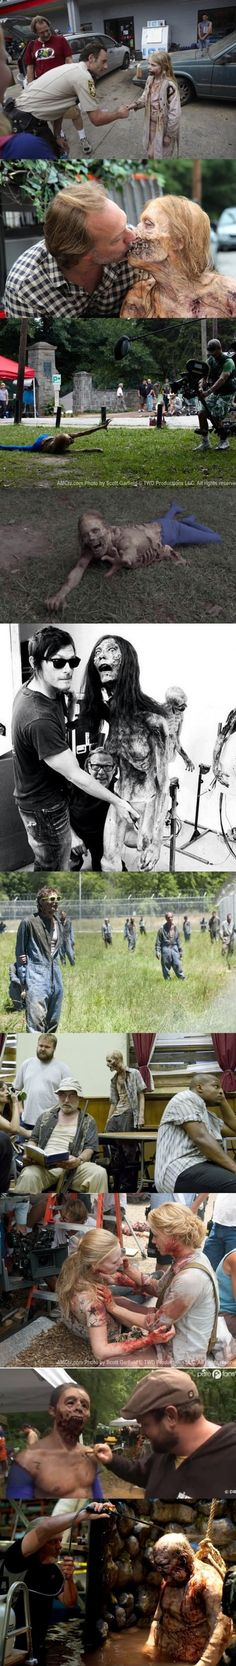 The Walking Dead backstage